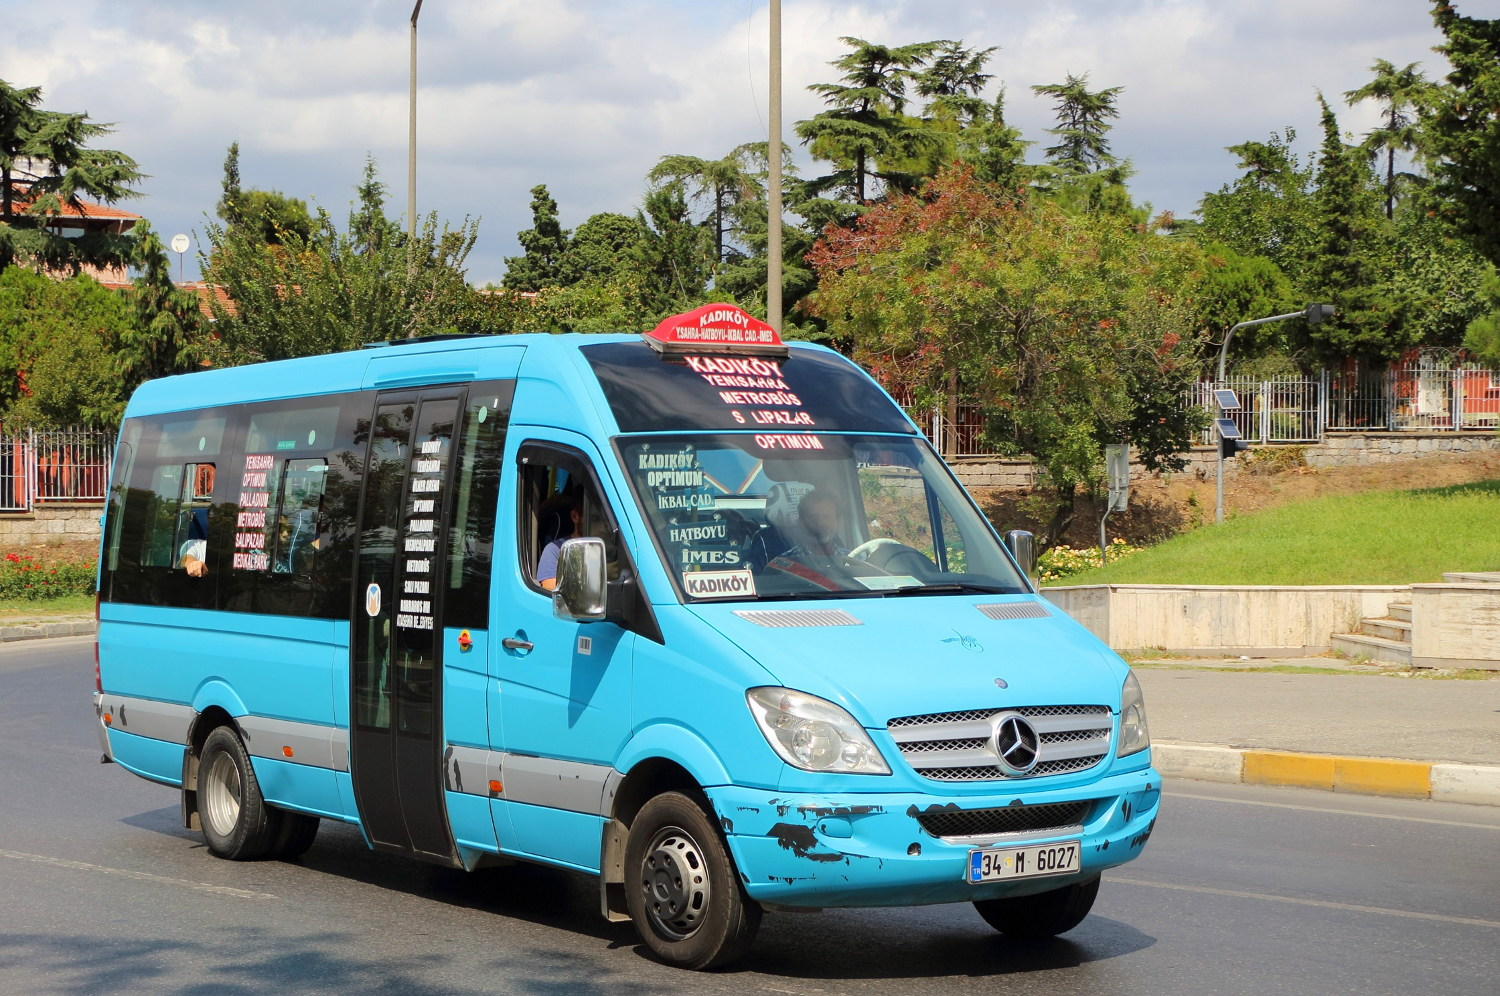 If you're up for an adventure, take a mini-bus in Istanbul, Turkey!